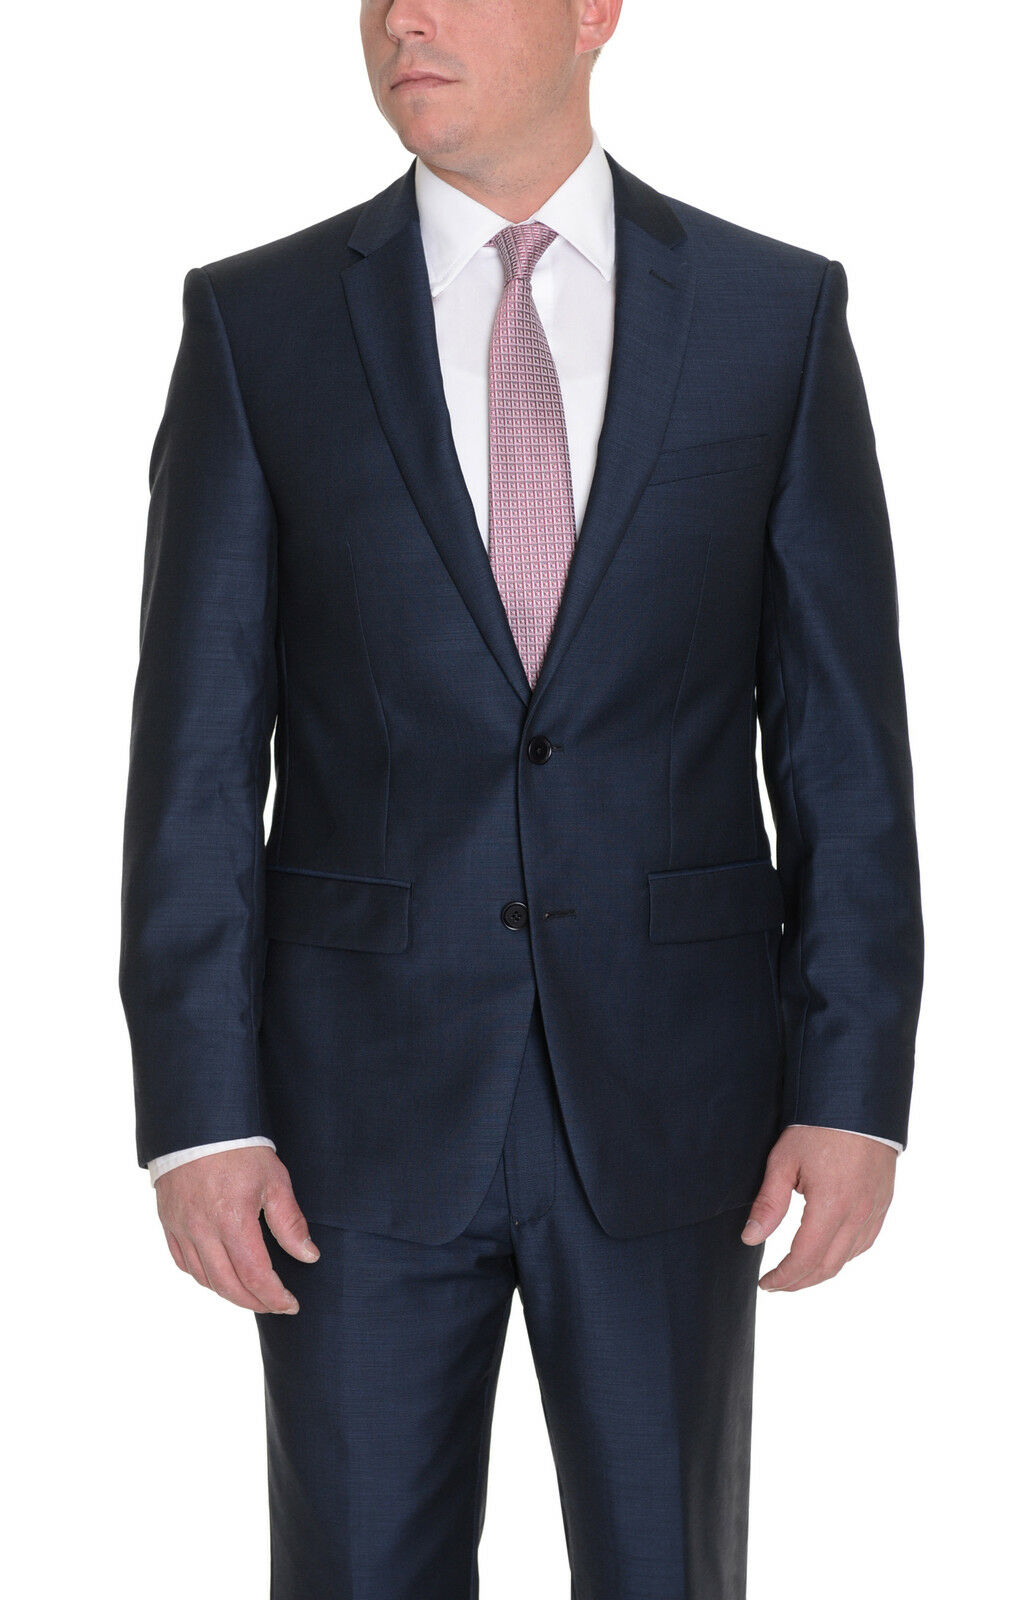 Dkny Bettwäsche Grau Dkny Skinny Blau Texturot Two Button Slim Fit Wool Suit